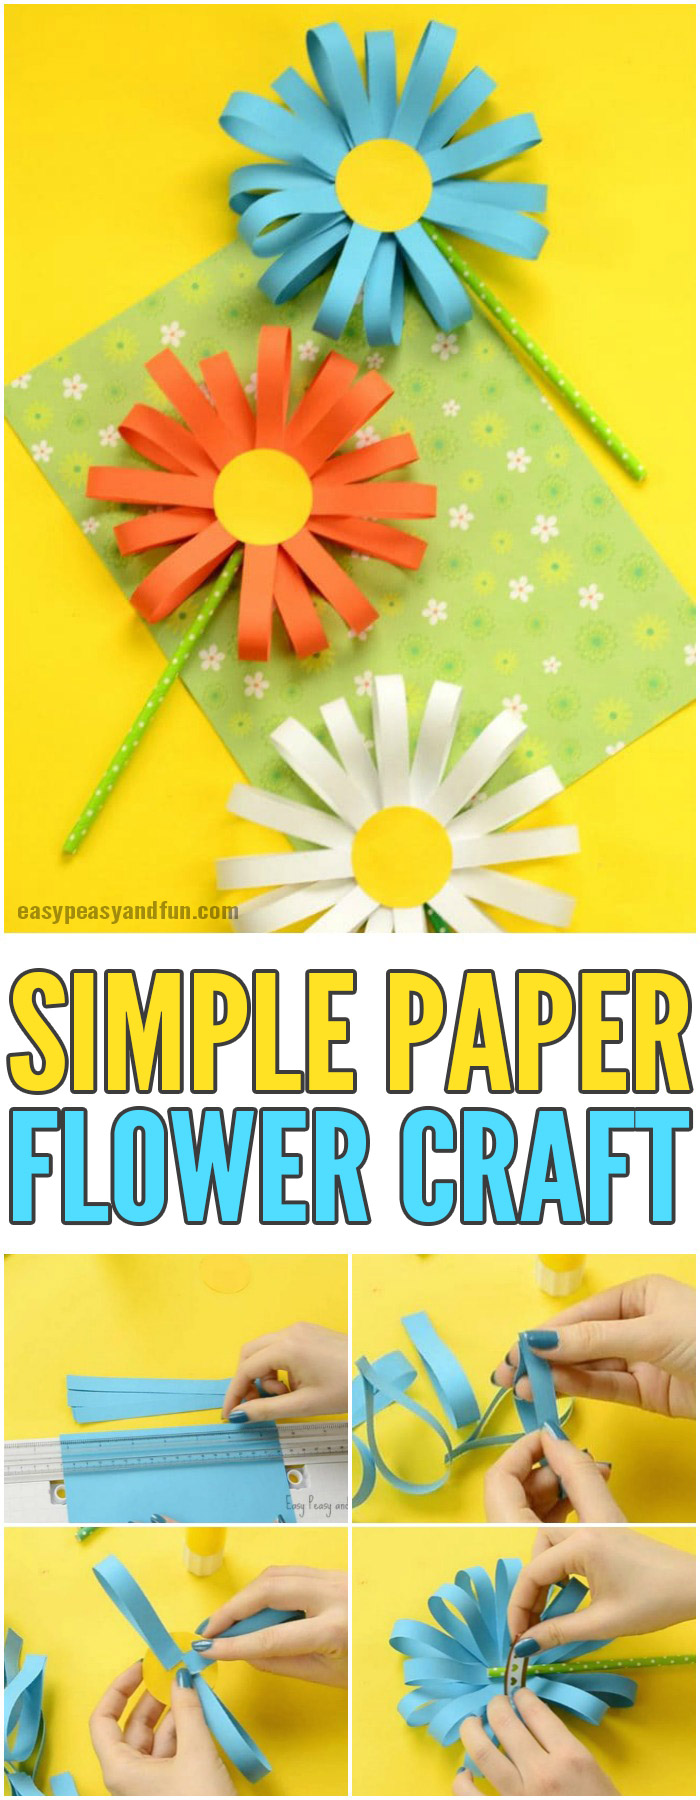 Paper flower craft easy peasy and fun simple paper flower craft for kids craftsforkids activitiesforkids papercrafts mightylinksfo